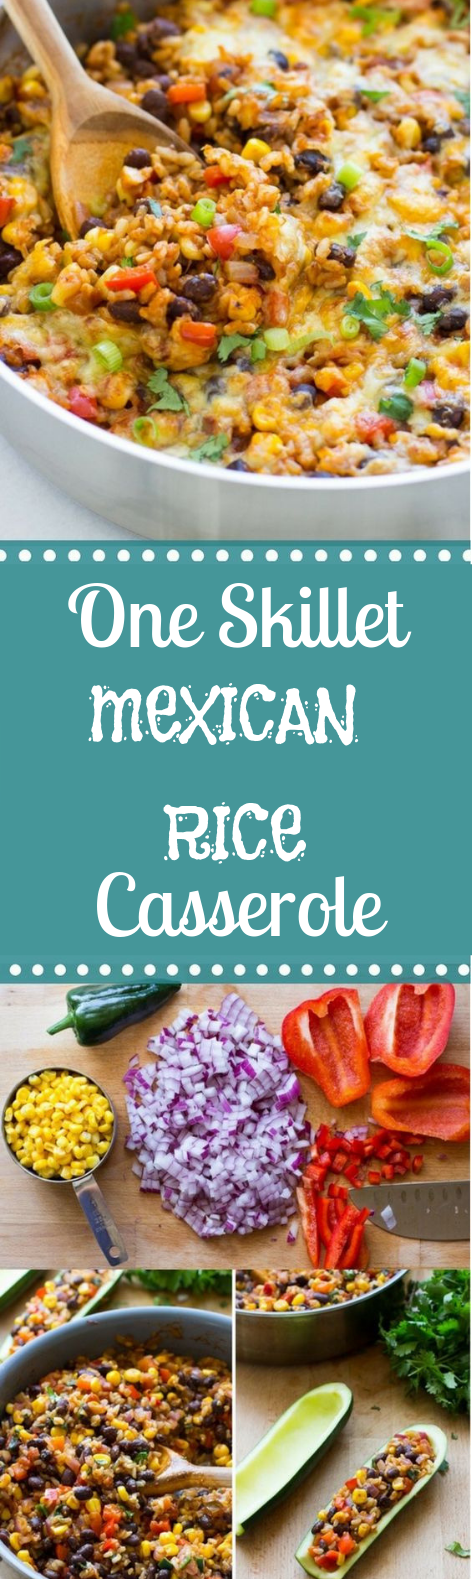 ONE SKILLET MEXICAN RICE CASSEROLE #vegetarian #deliciousmeal